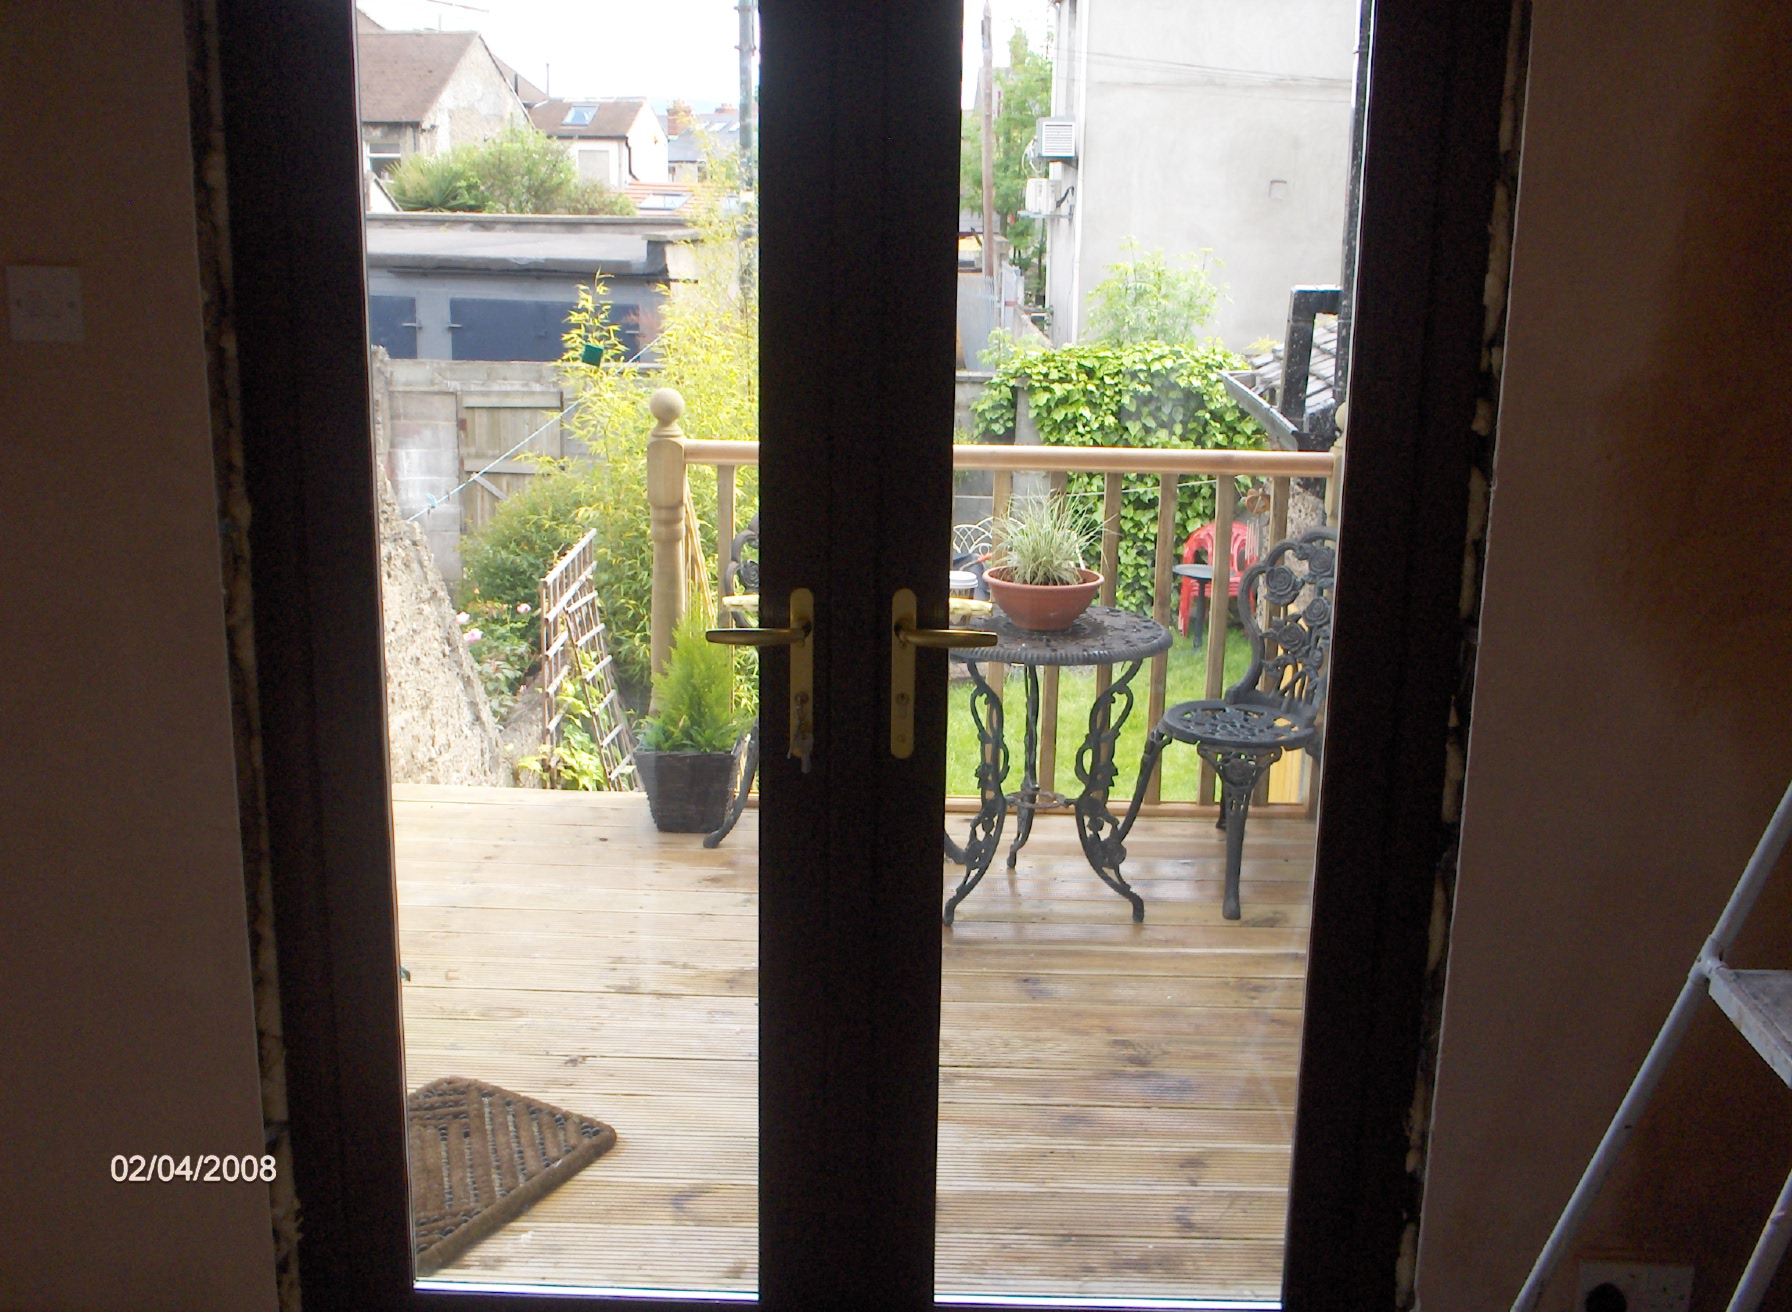 renovation, continued, we had the french doors manufactured with walnut finish on the interior and white on the exterior th keep the inside matching and all the exterior white pvc windows matching,